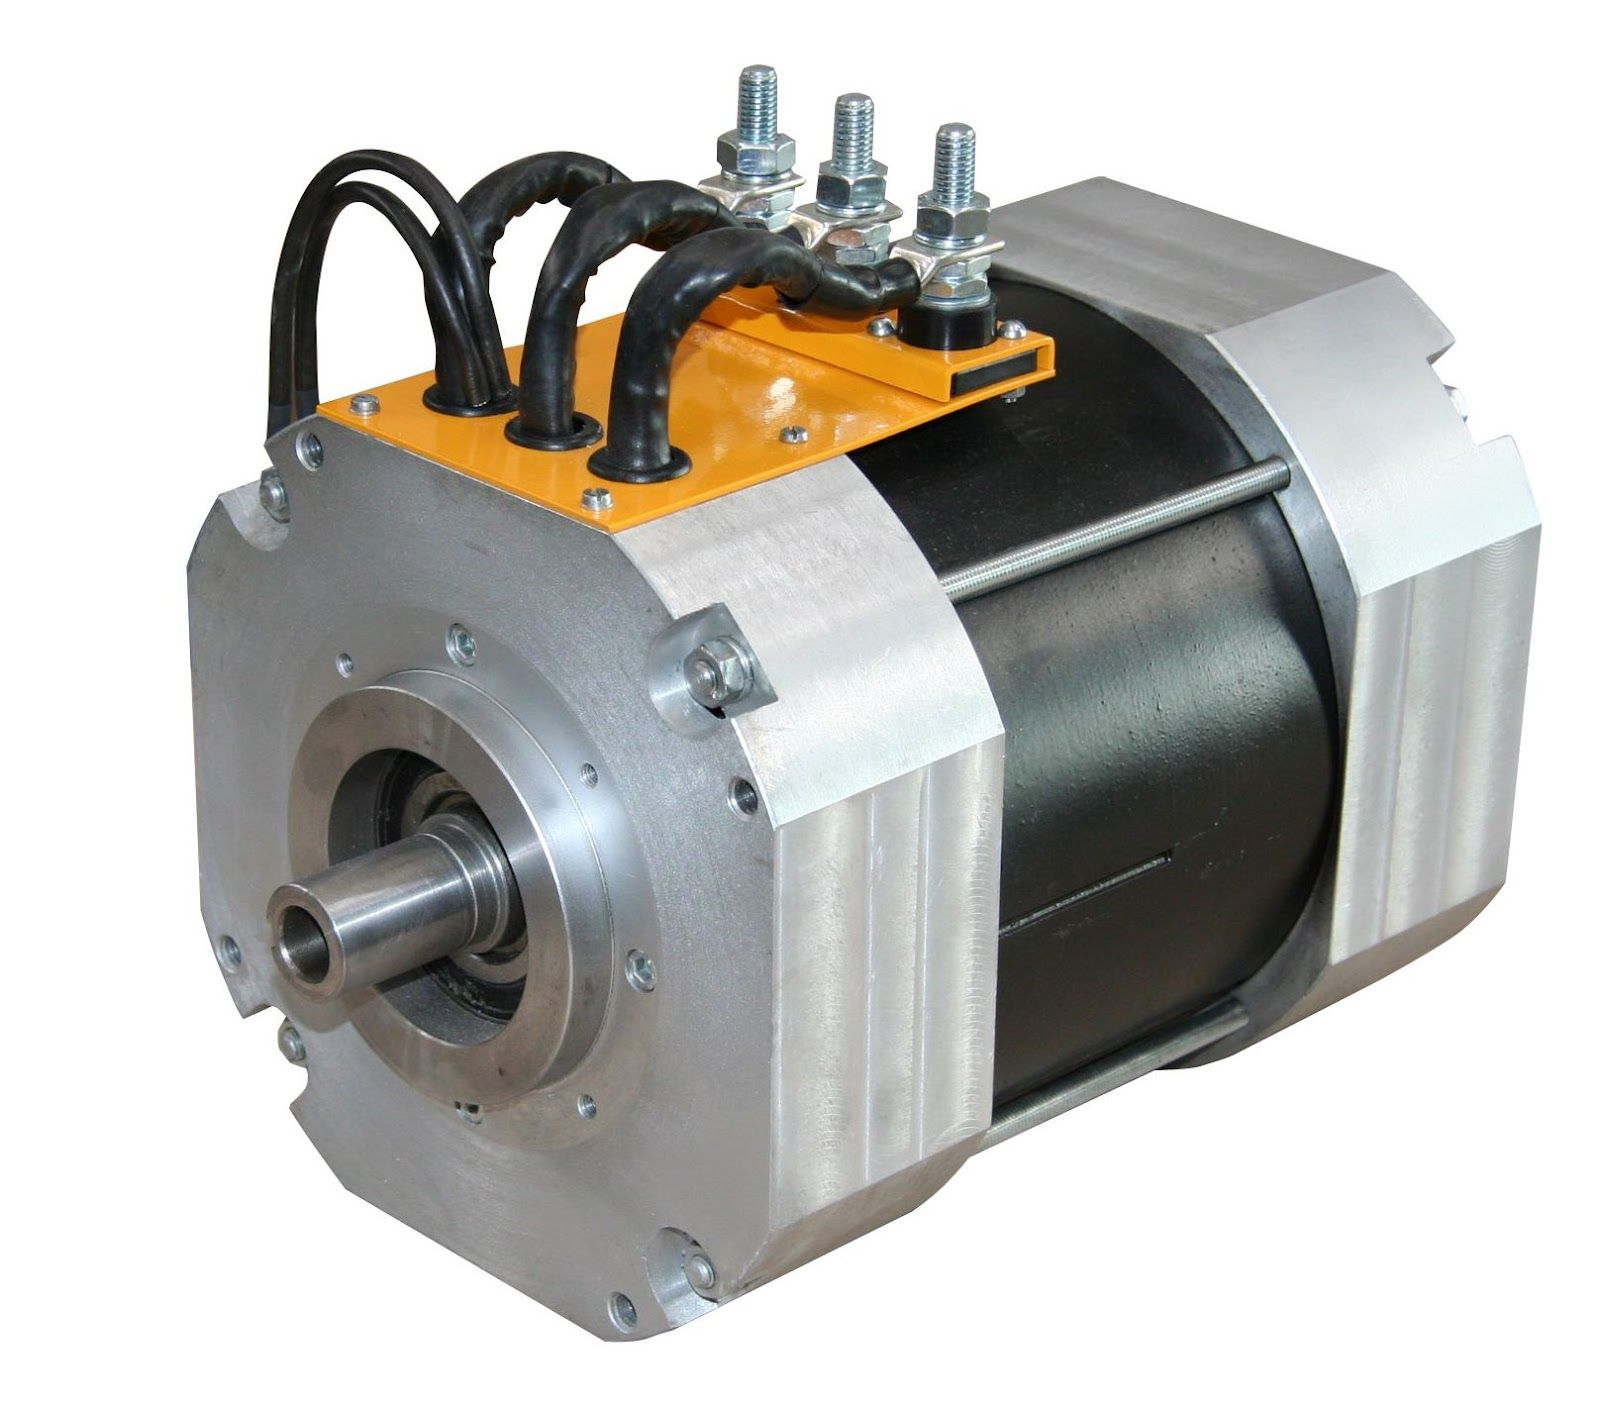 This Motor Is Designed To Run On 32 67vac Requires A 48 96vdc Battery Featuring 40kw With 550a Controller Of Peak